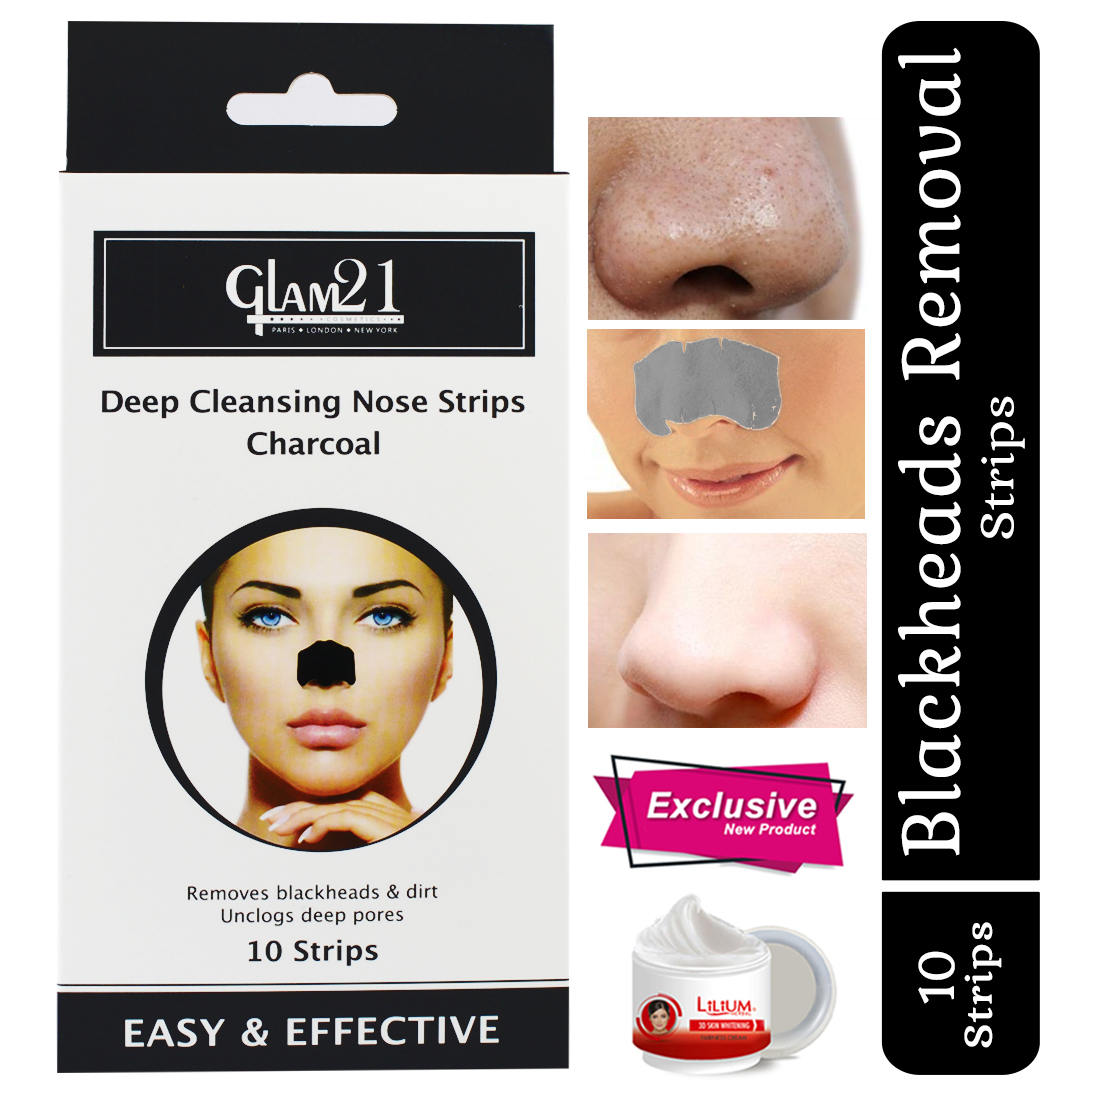 Glam21 Deep Cleansing Nose Strips With Skin Whitening Cream - Charcoal